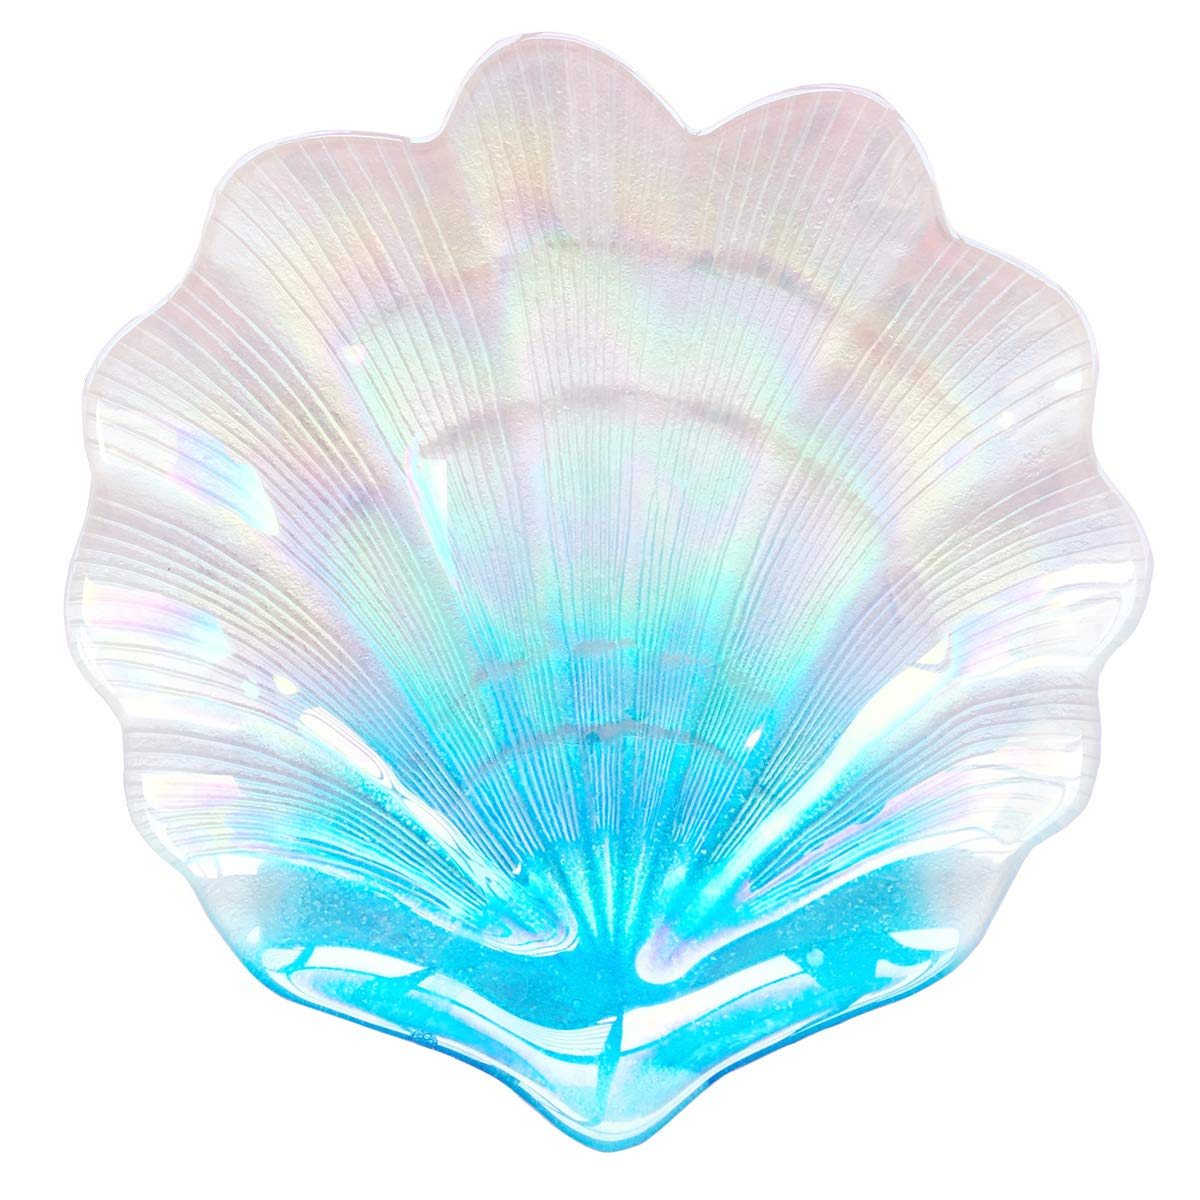 HOMETOOK Shell Dish 12inch Blue Glass Plates in Ocean Color Jewelry Tray Great Dessert Appetizer Wedding Plates Party Plates